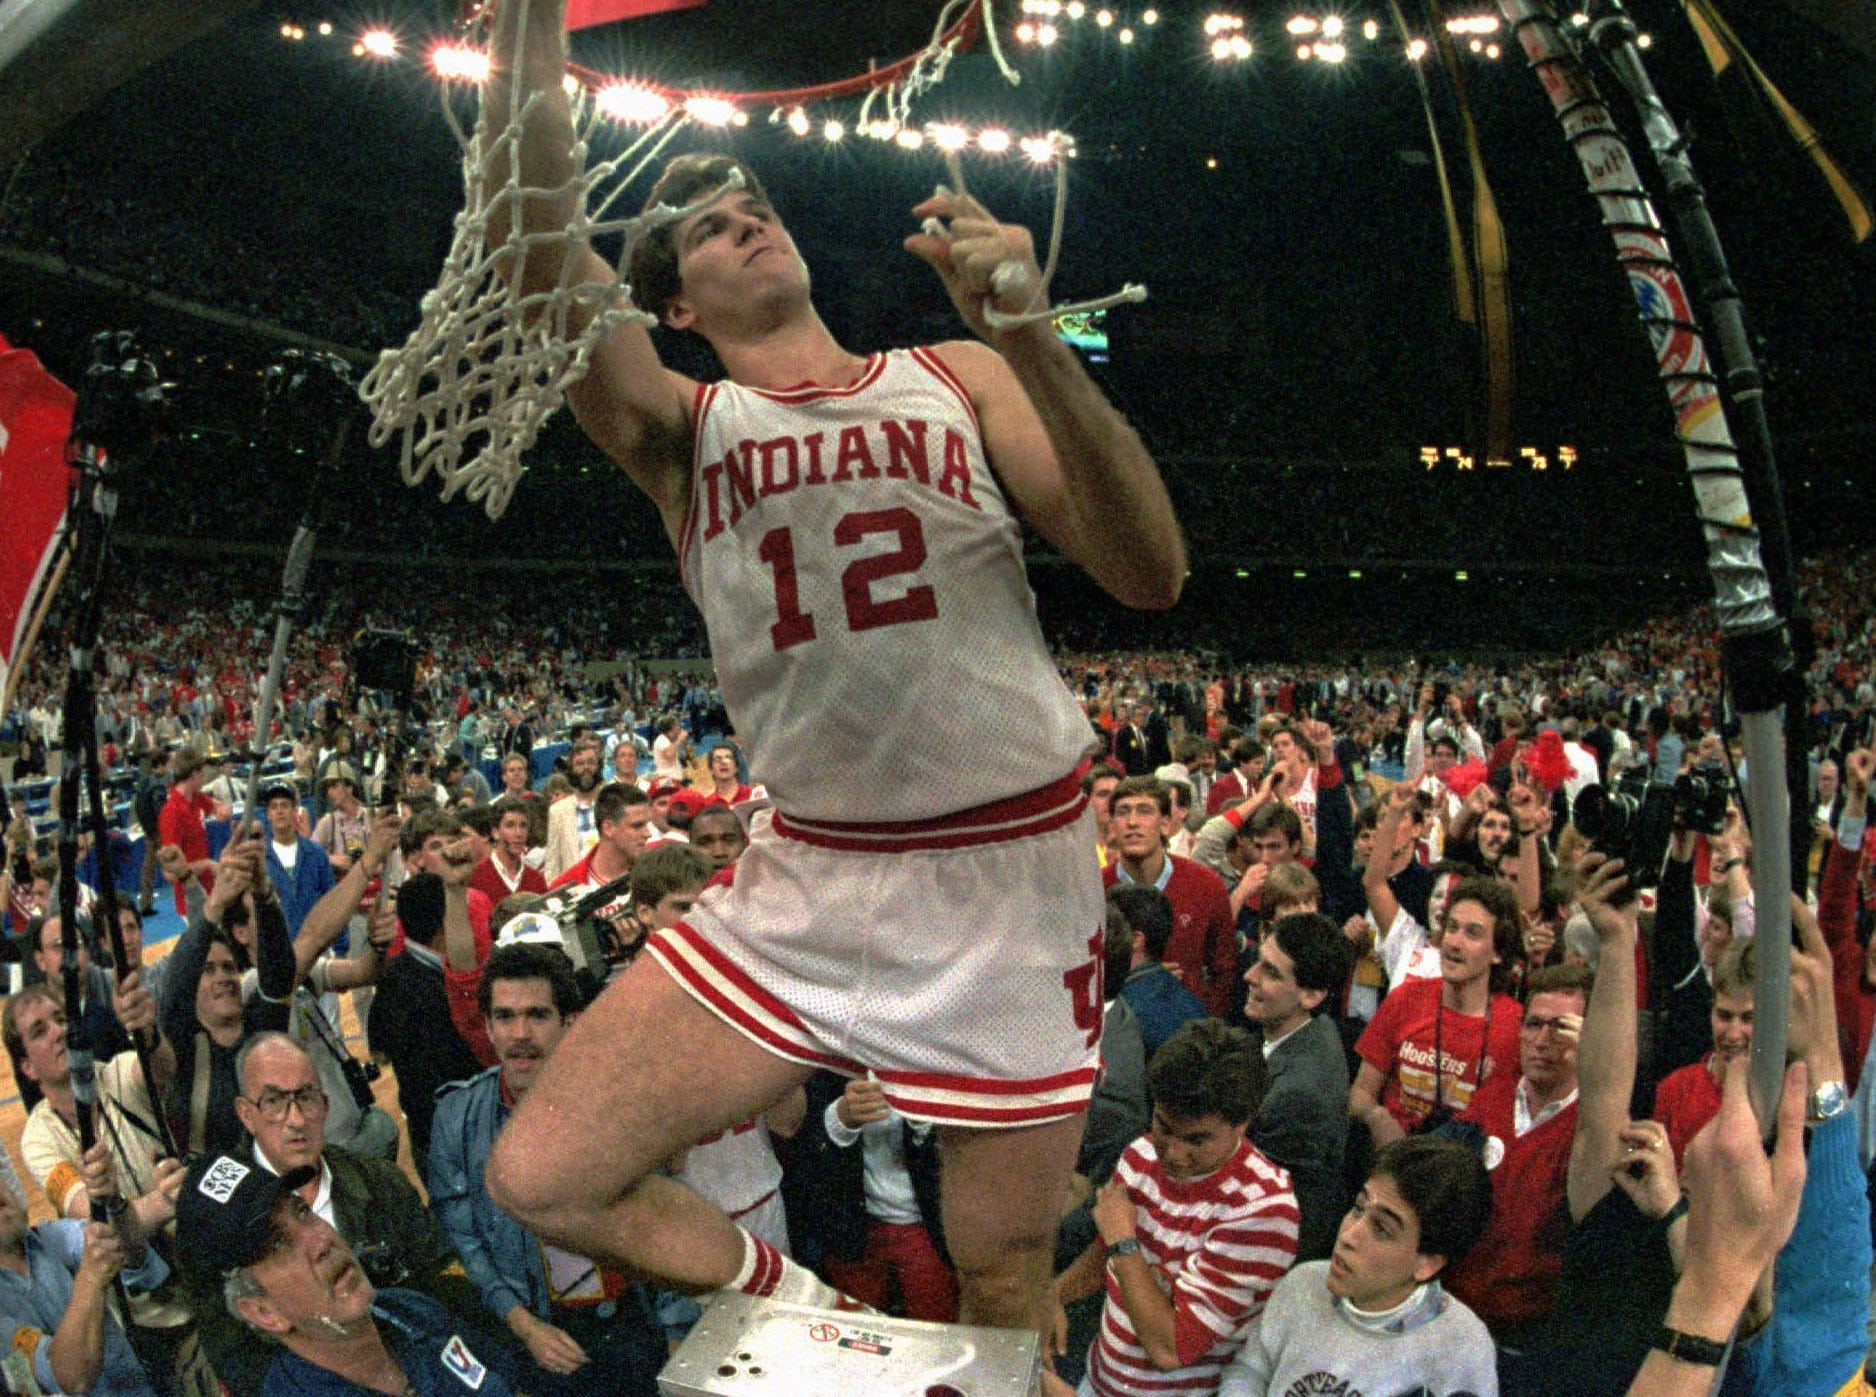 Indiana's Steve Alford cuts the net March 30, 1987 at the Superdome in New Orleans after Indiana defeated Syracuse for the NCAA championship.